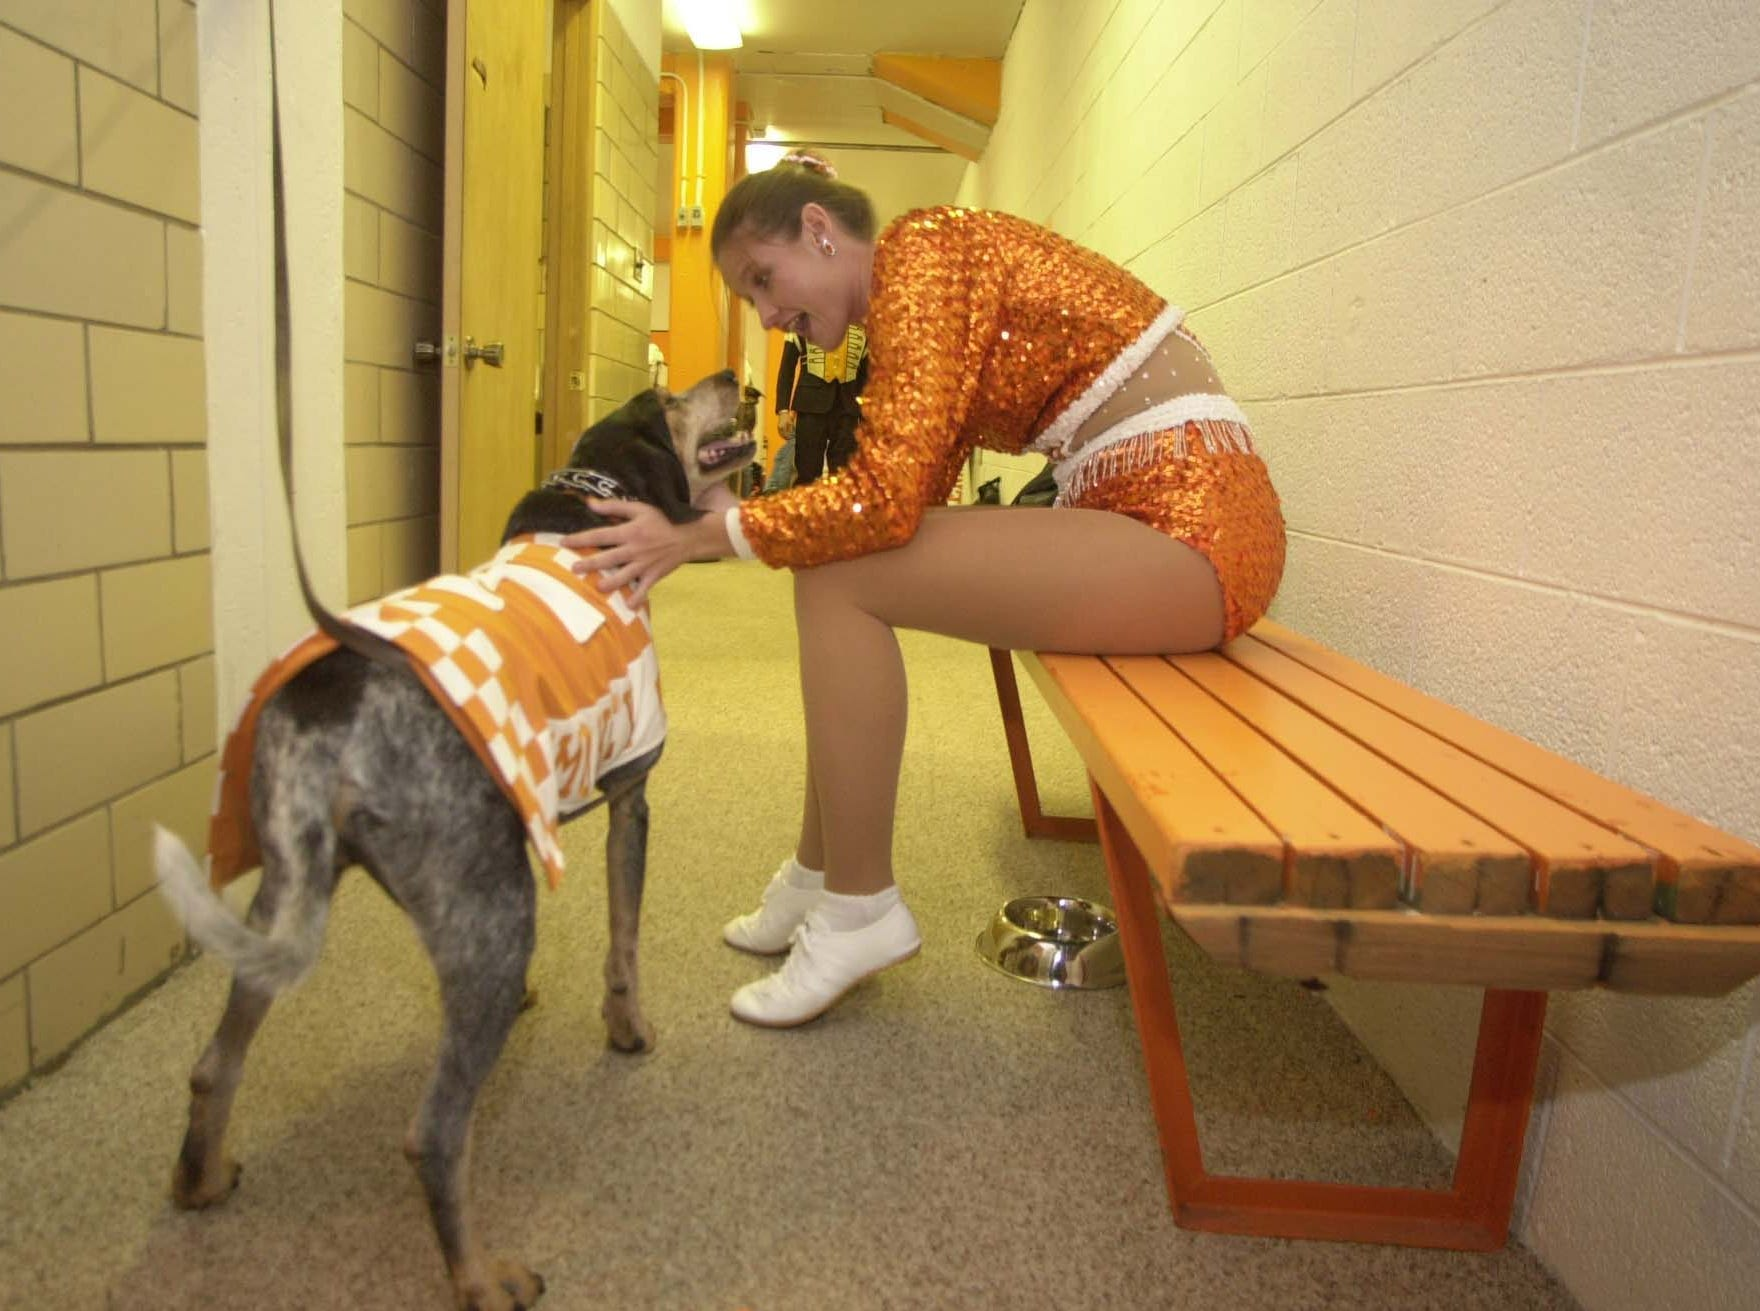 Majorette Karyn Lee says hello to Smokey in the cheerleader's locker room in Neyland Stadium before game time Saturday morning. He goes to the locker room before the game and at half time to get some privacy.